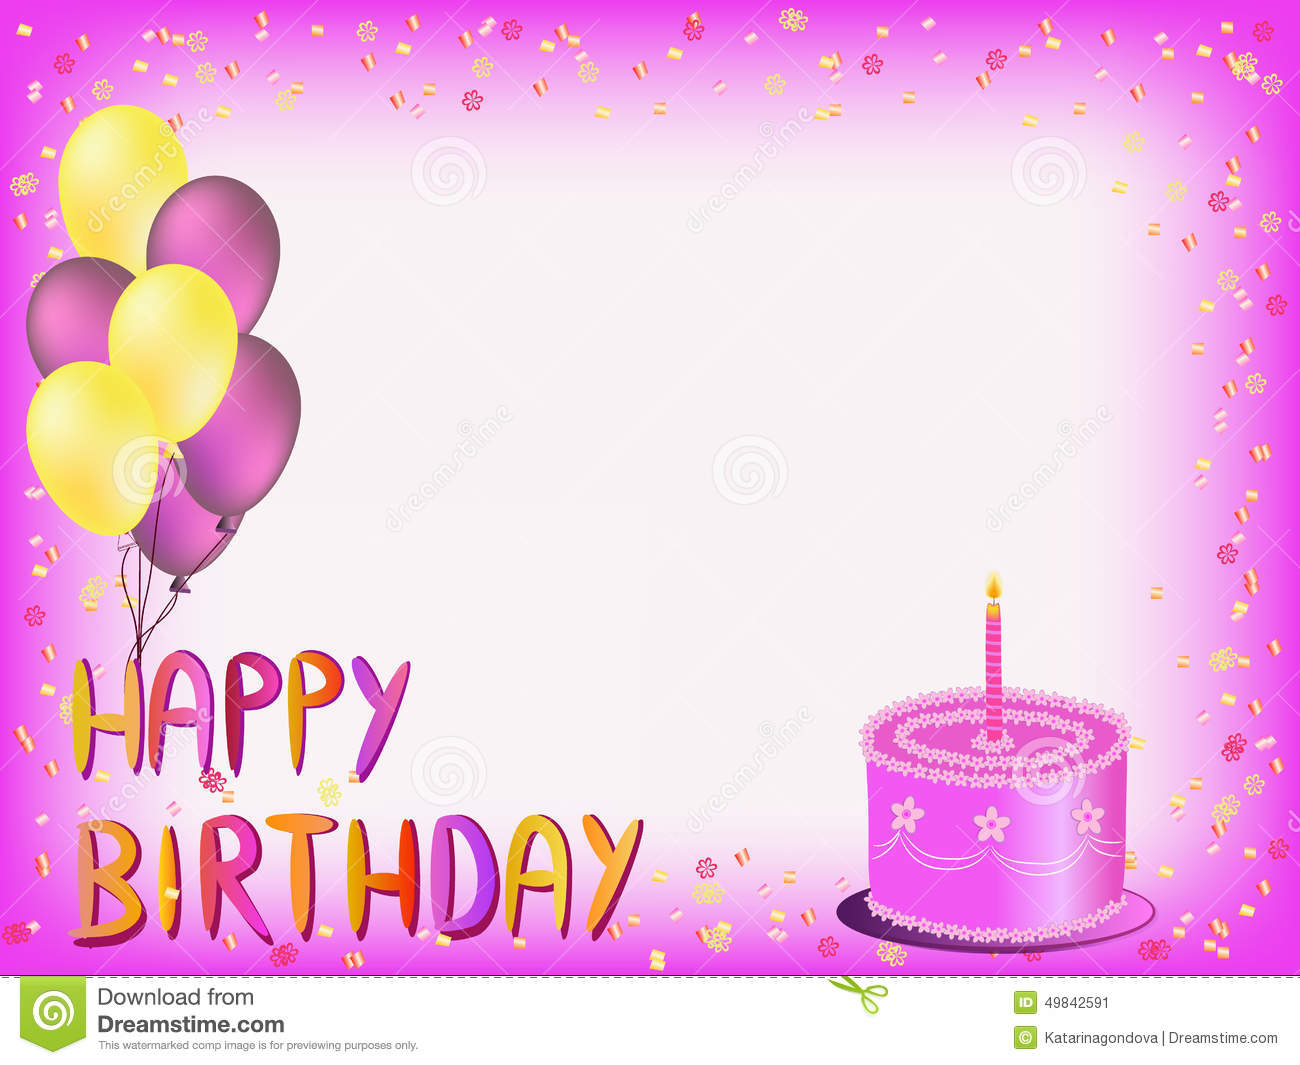 greeting cards for birthday design ; birthday-greetings-cards-rectangle-landscape-purple-white-balloon-and-cake-picture-happy-birthday-greeting-card-colorful-words-balloons-cake-illustration